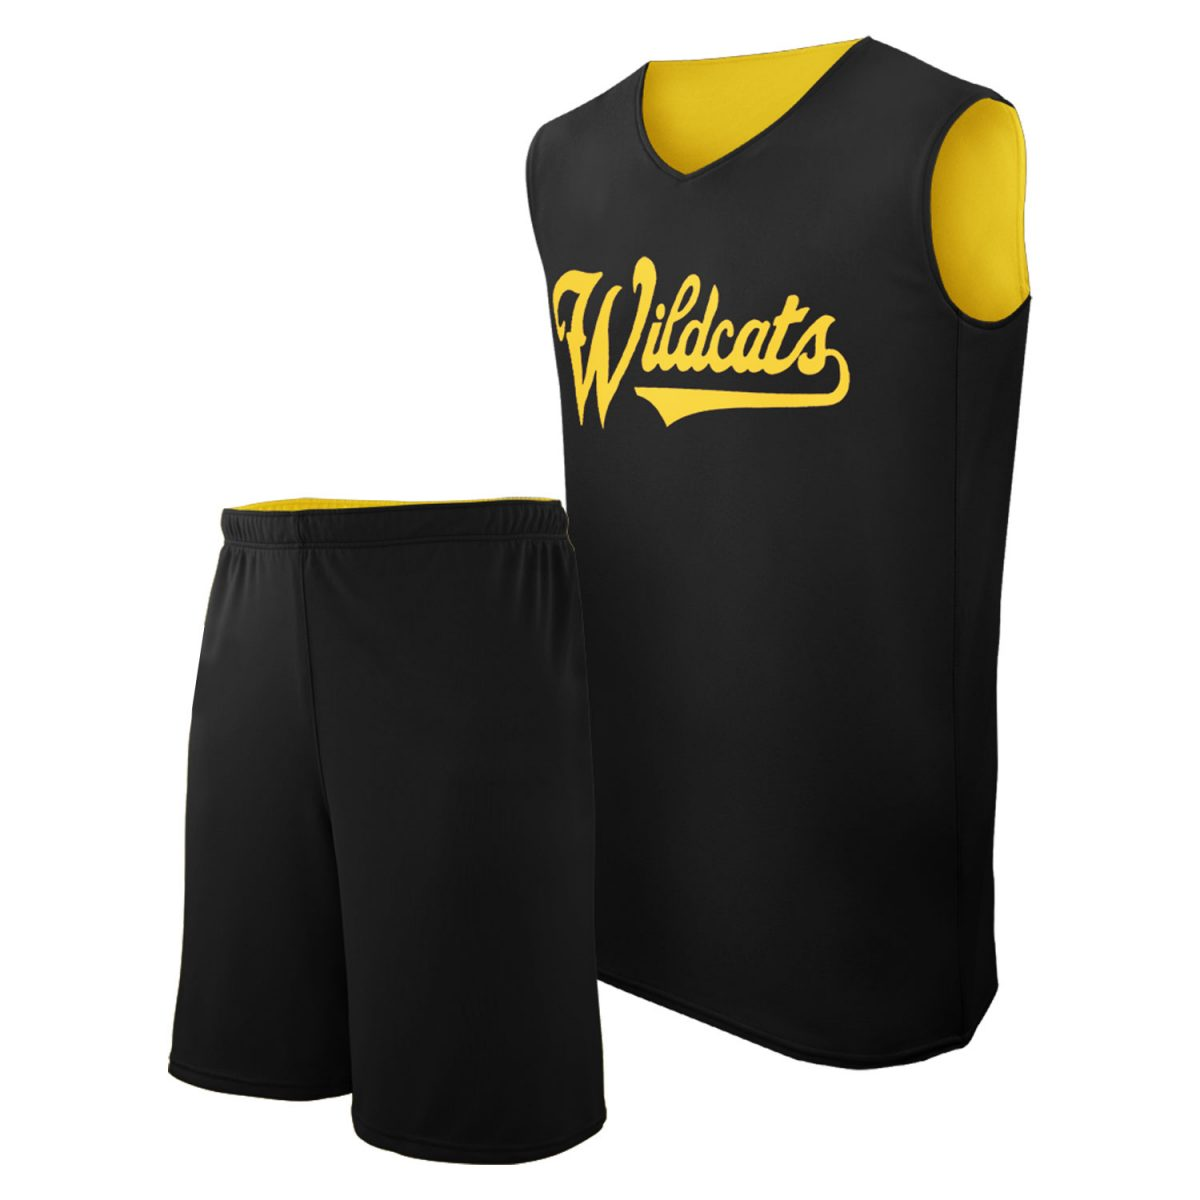 Boys Basketball Uniforms Manufacturers in Meerut